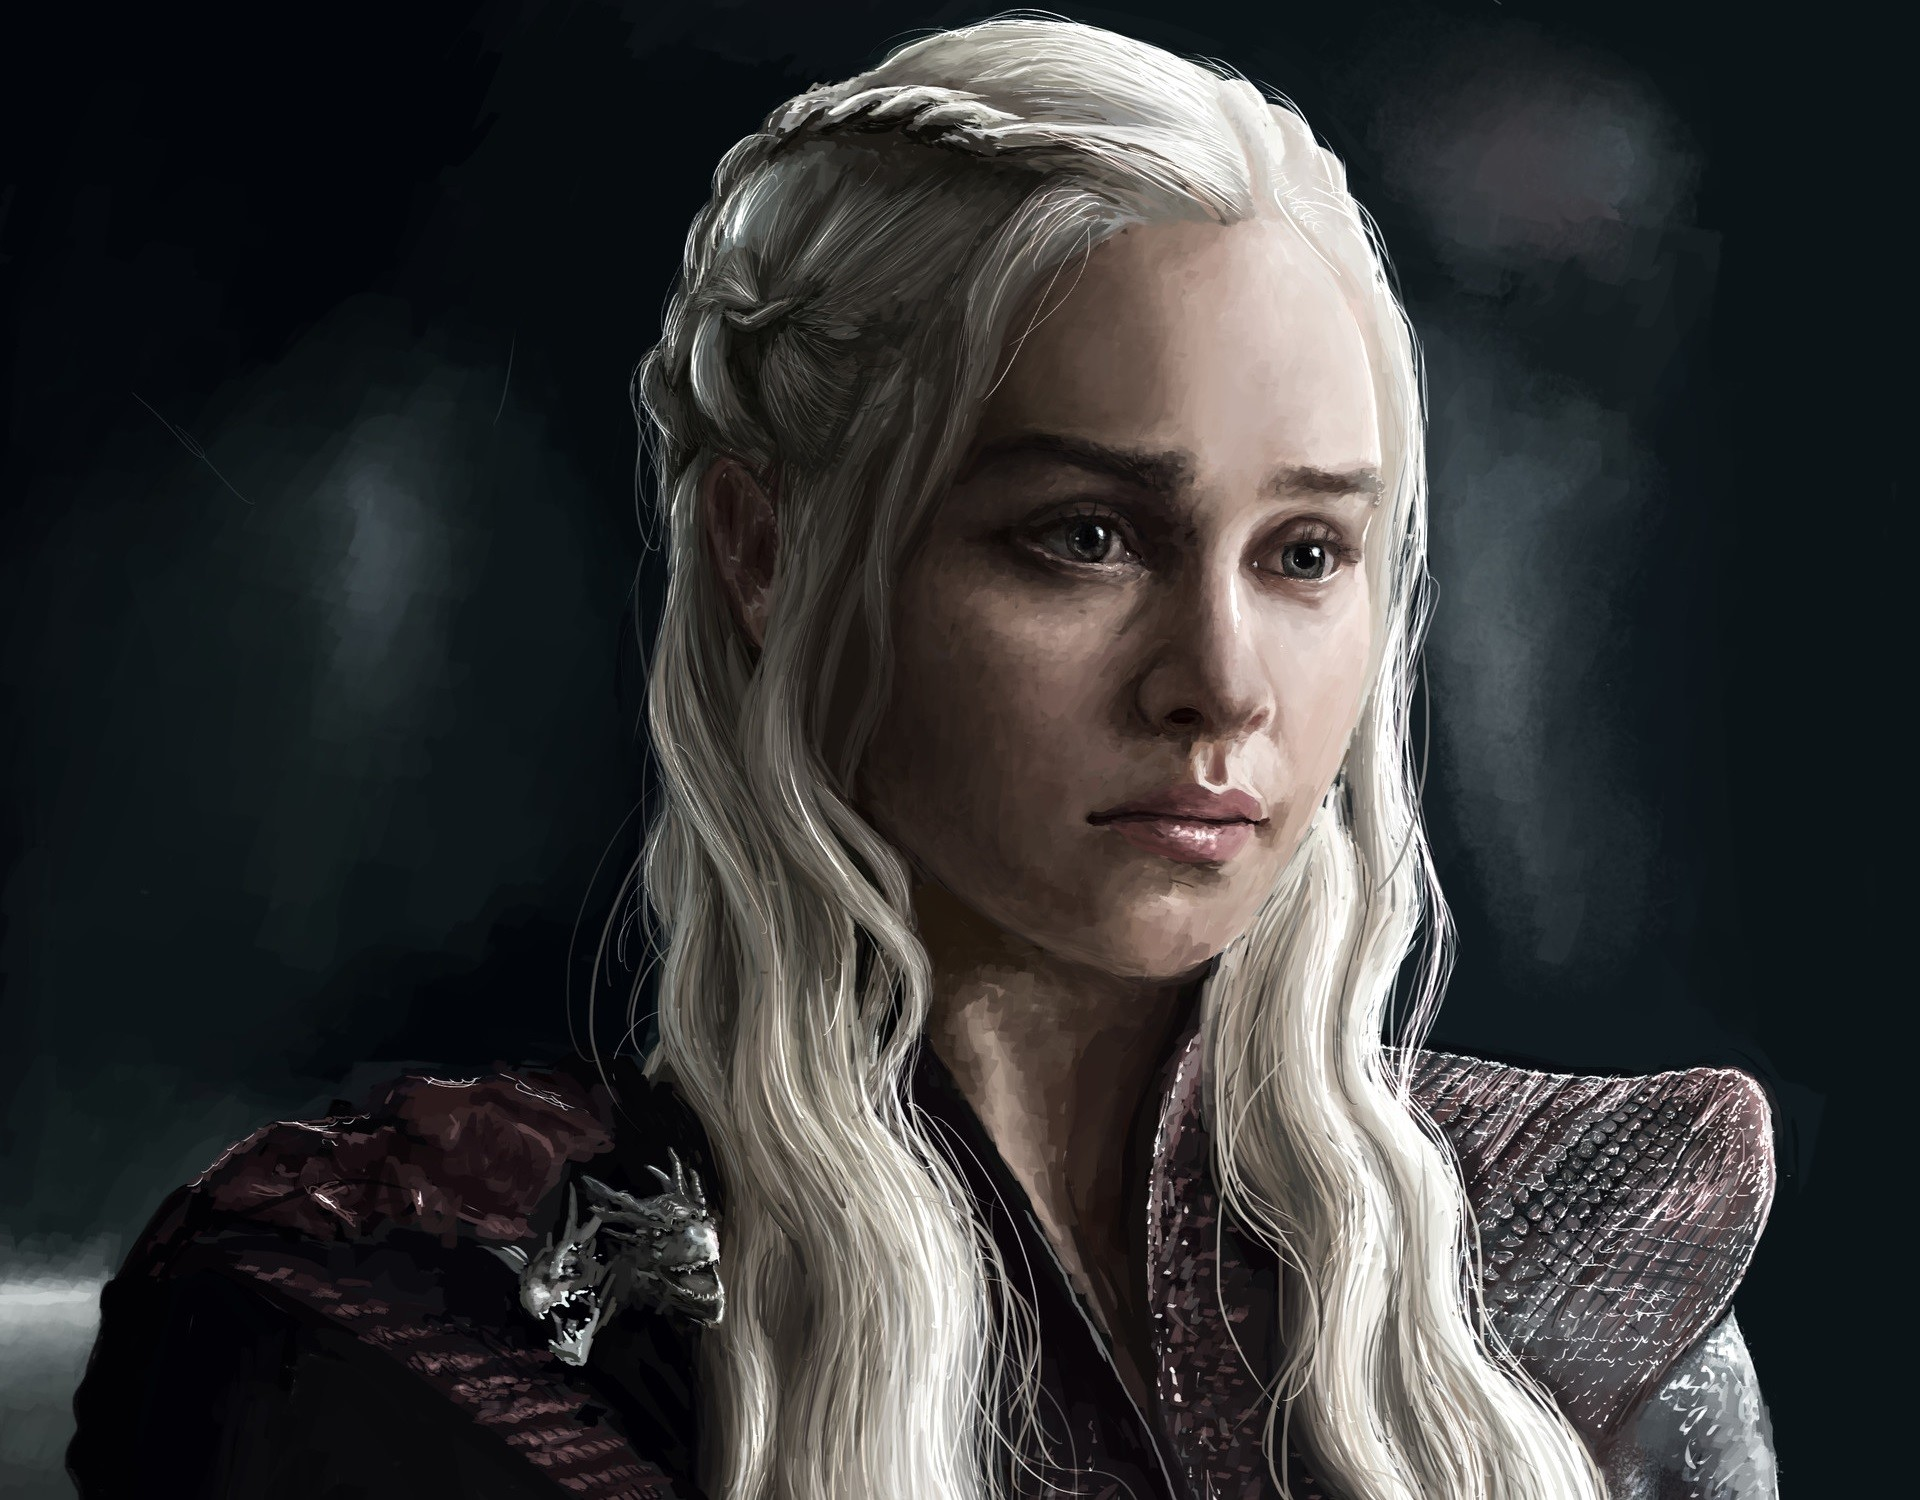 Tv Show Game Of Thrones White Hair Face Daenerys Targaryen - Game Of Thrones Daenerys Hd - HD Wallpaper